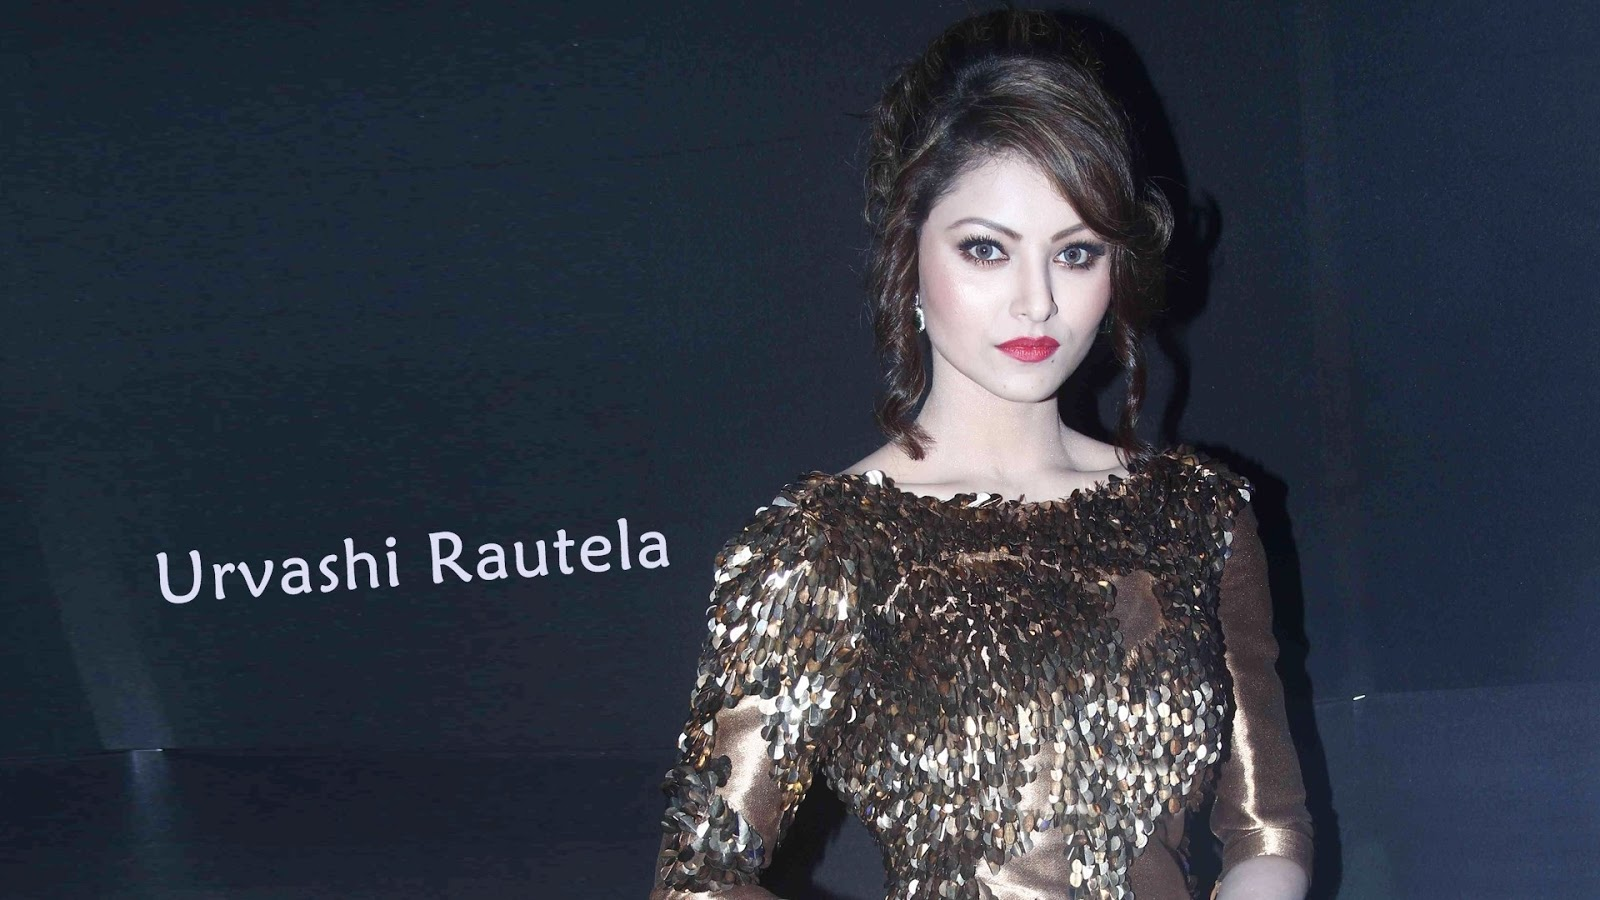 Hd wallpaper urvashi - 10 Best Hd Wallpapers Of Bollywood Actress Urvashi Rautela 2017